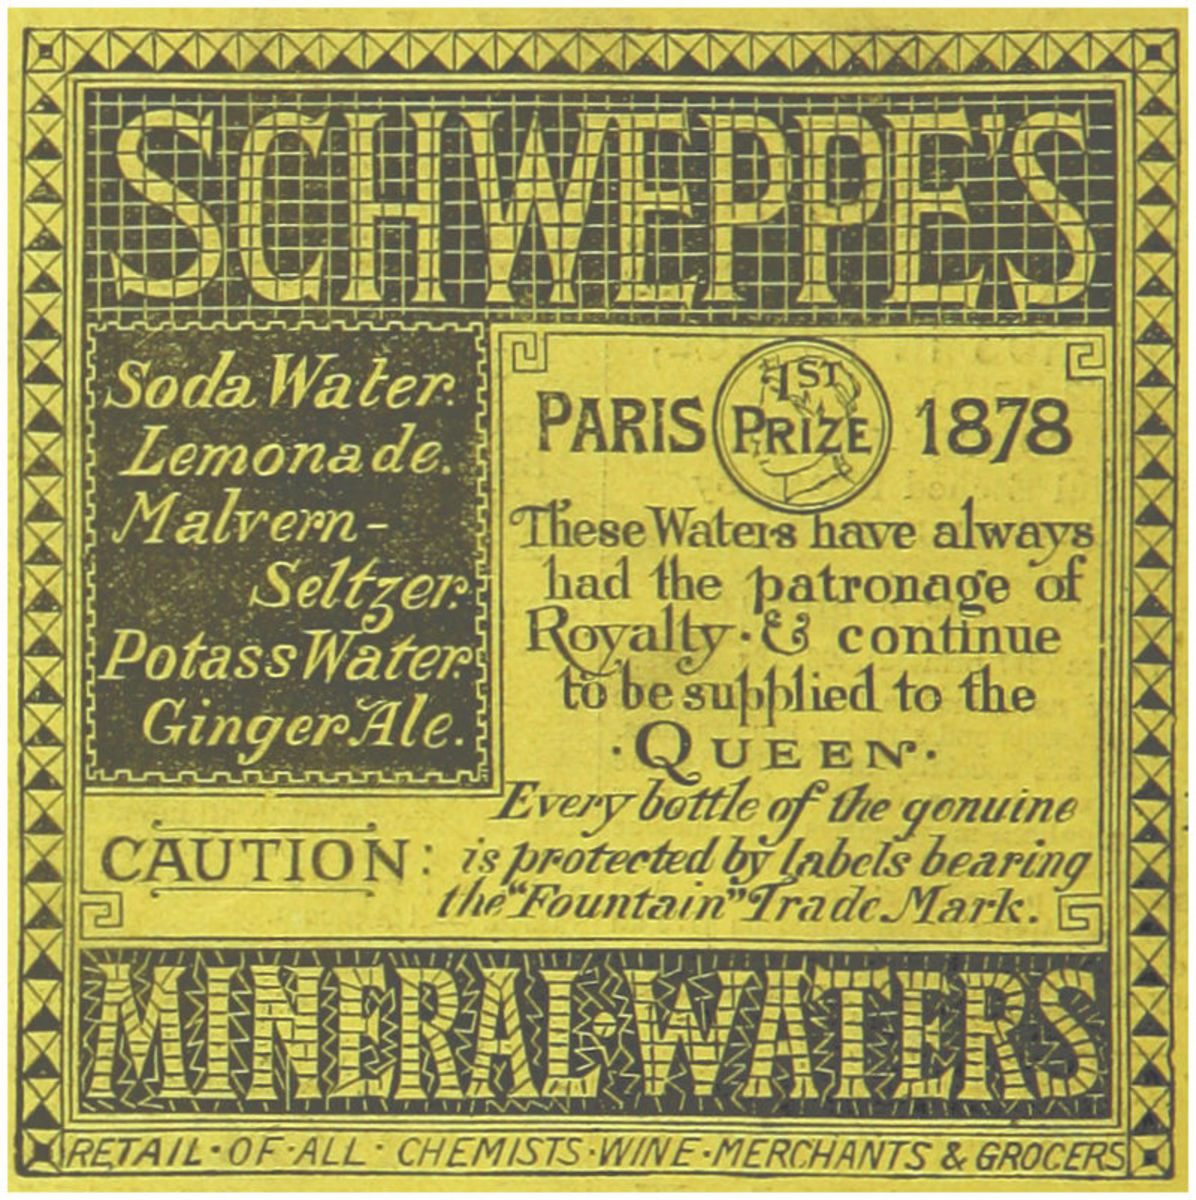 Schweppes made its first lemony beverages in 1883!